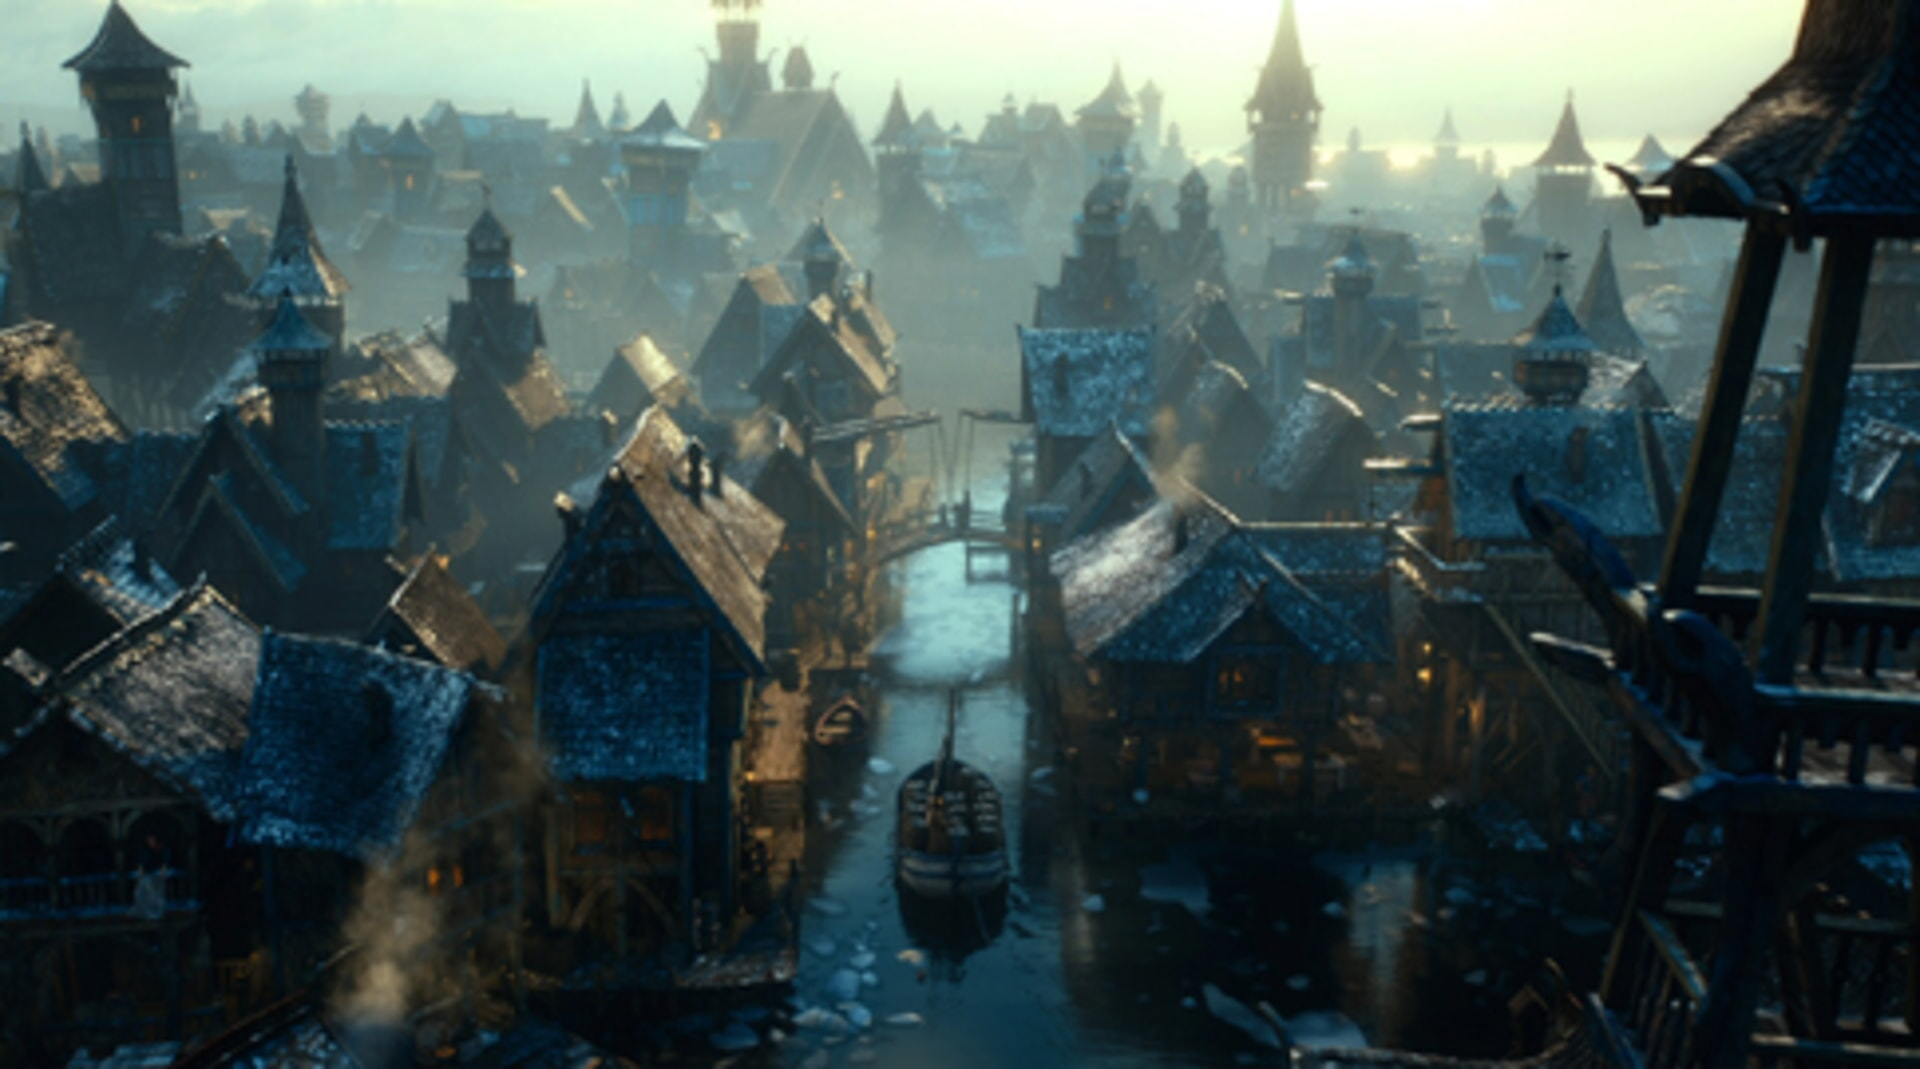 The Hobbit: The Desolation of Smaug - Image 33